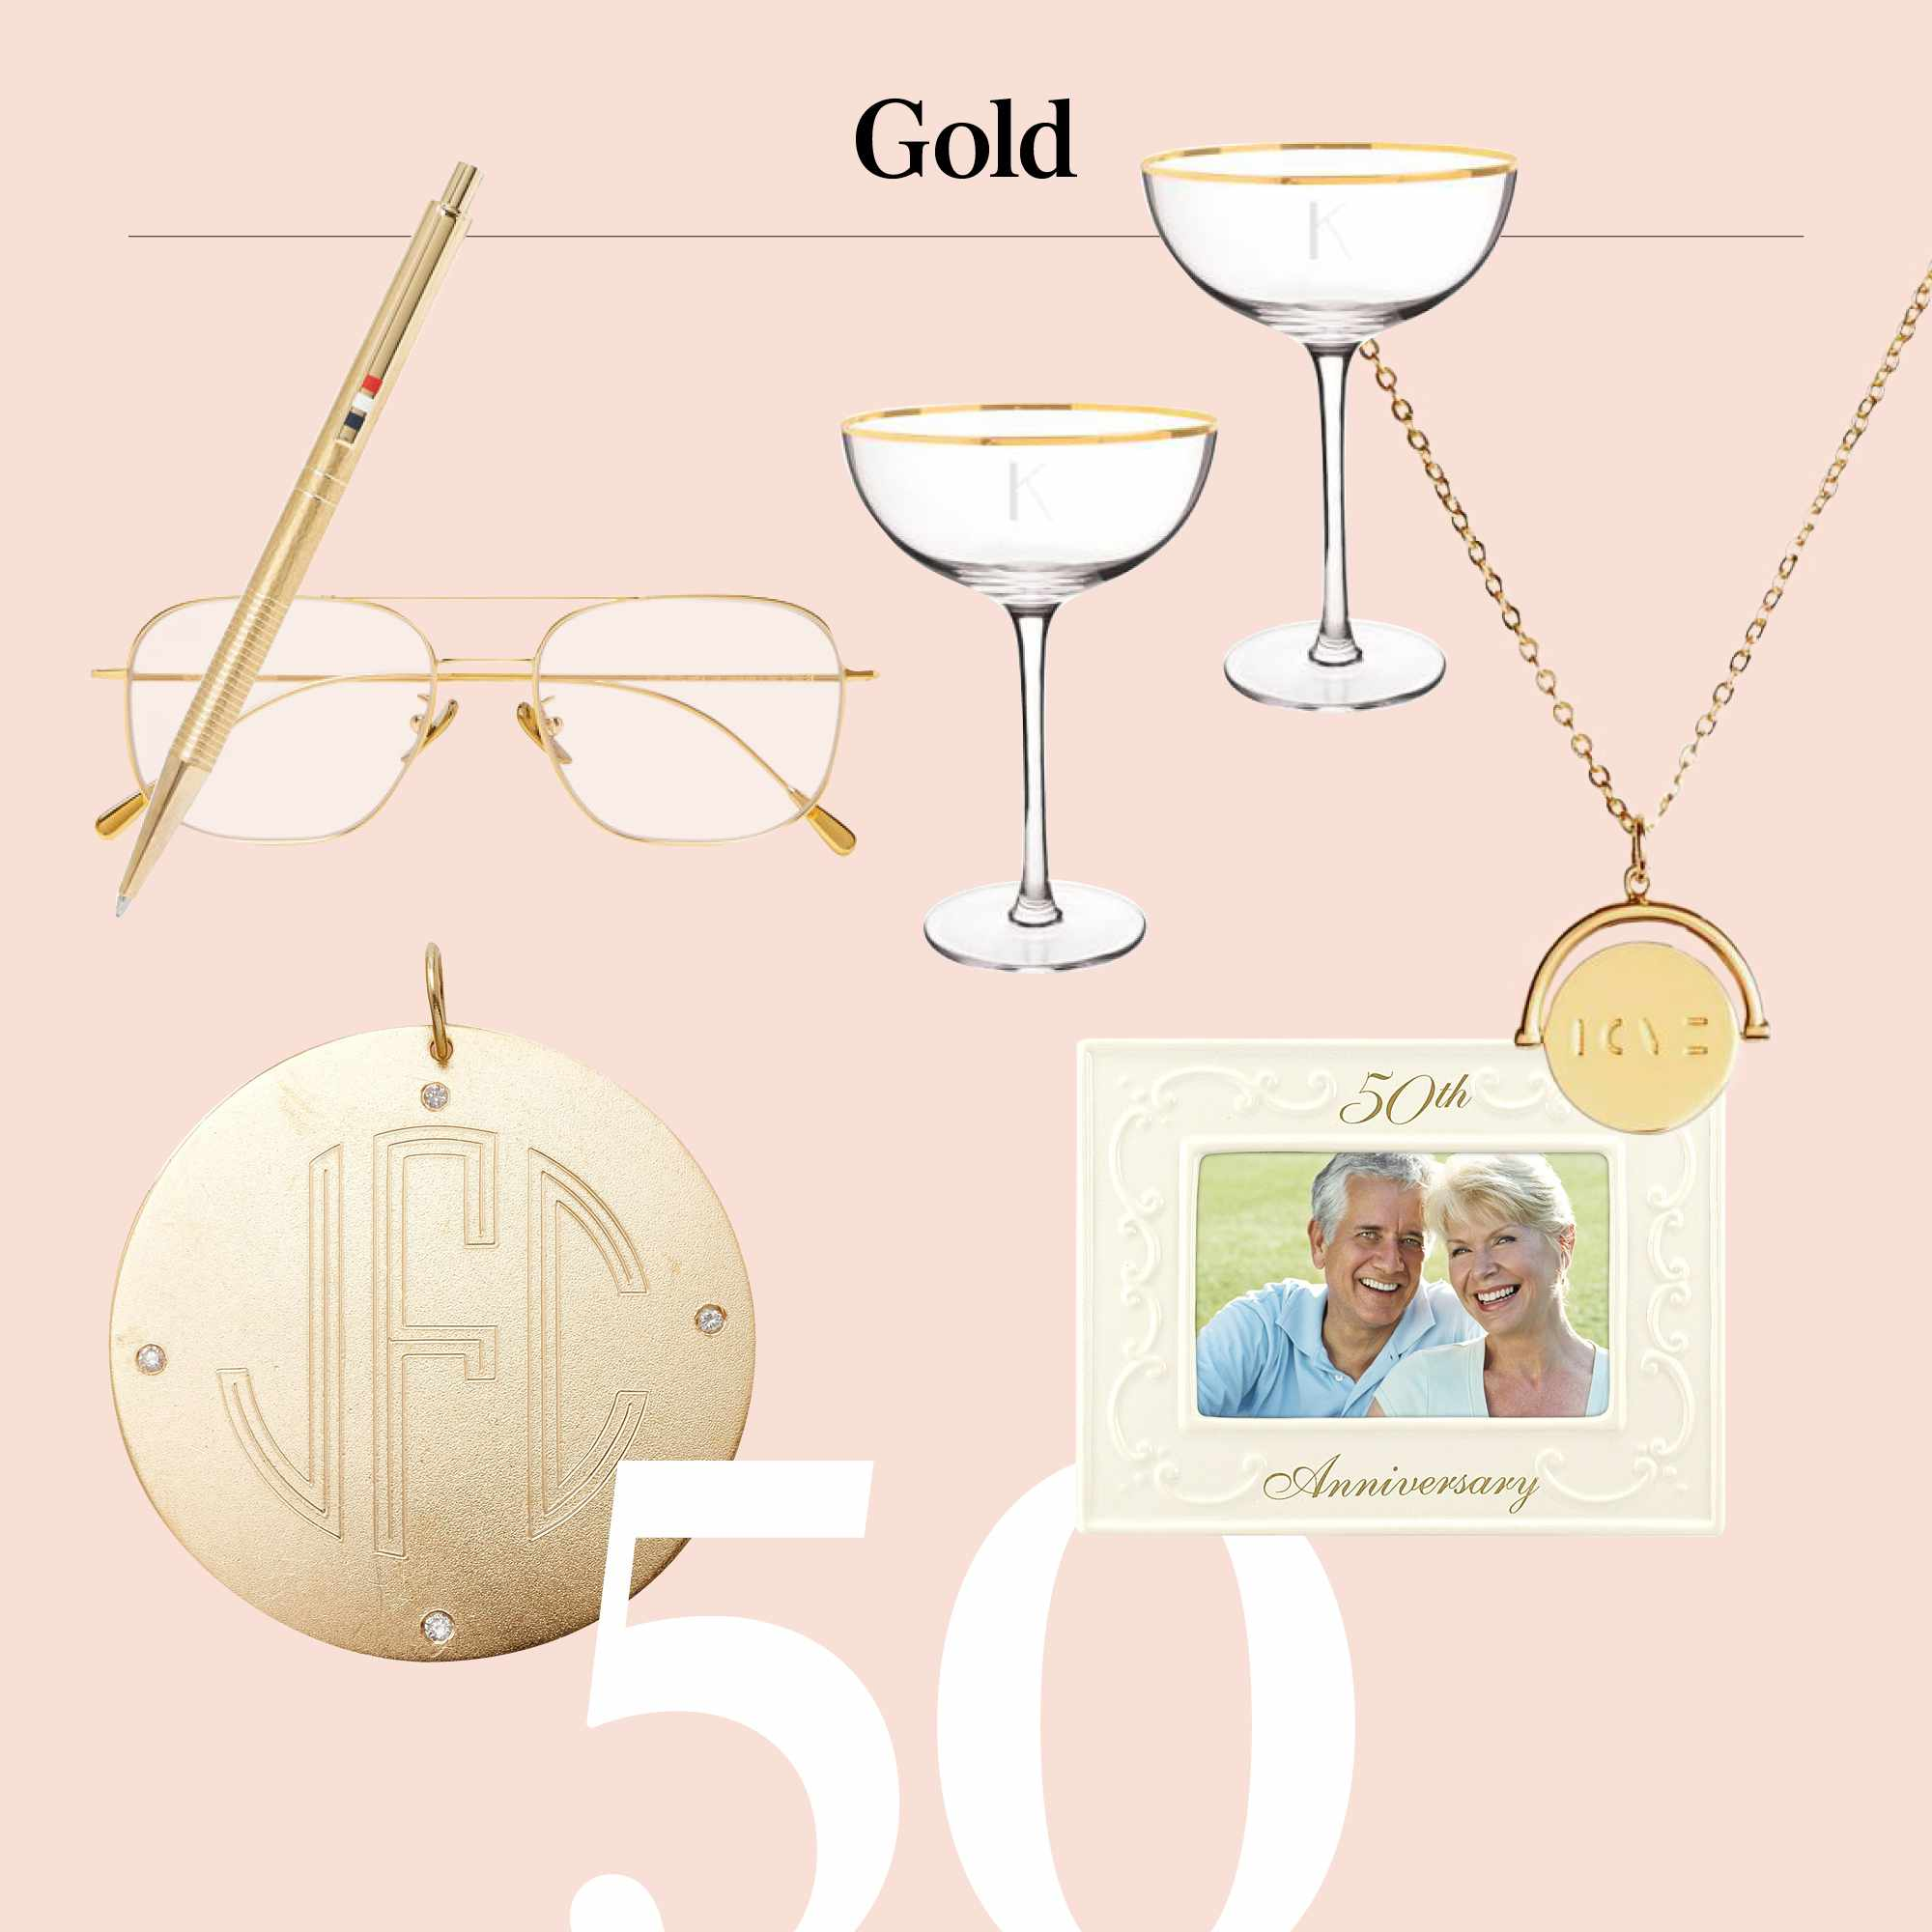 54 Wedding Anniversary Gifts by Year for Him, Her, and Them